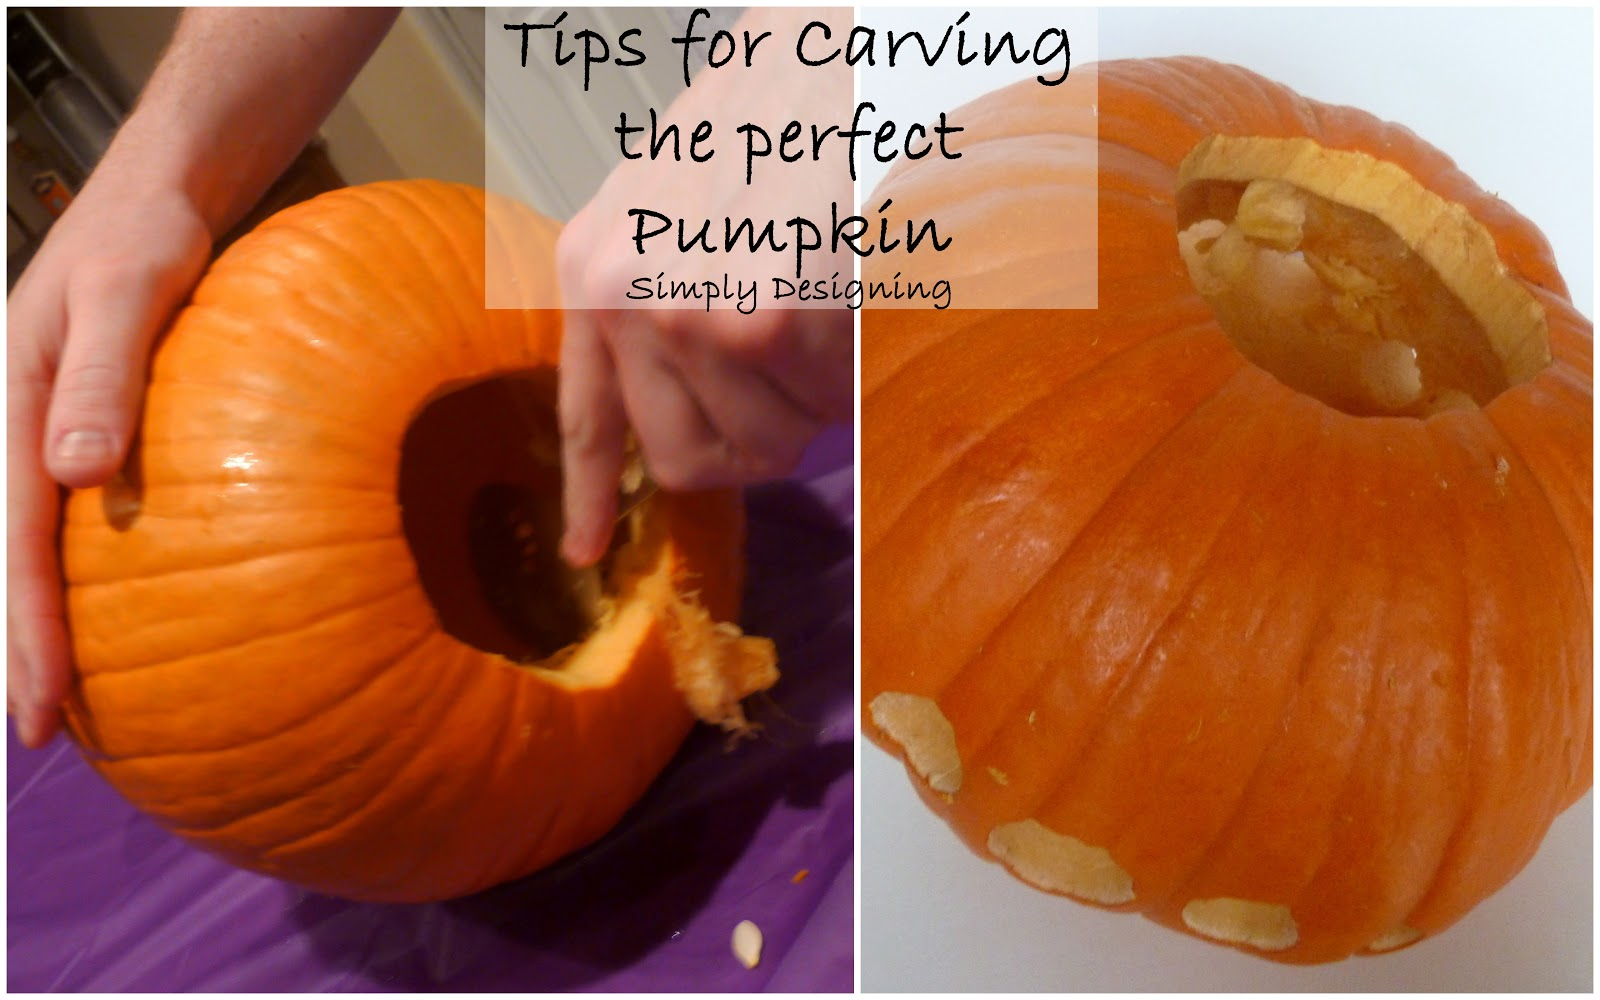 5 Simple Ways To Carve And Decorate Your Pumpkin